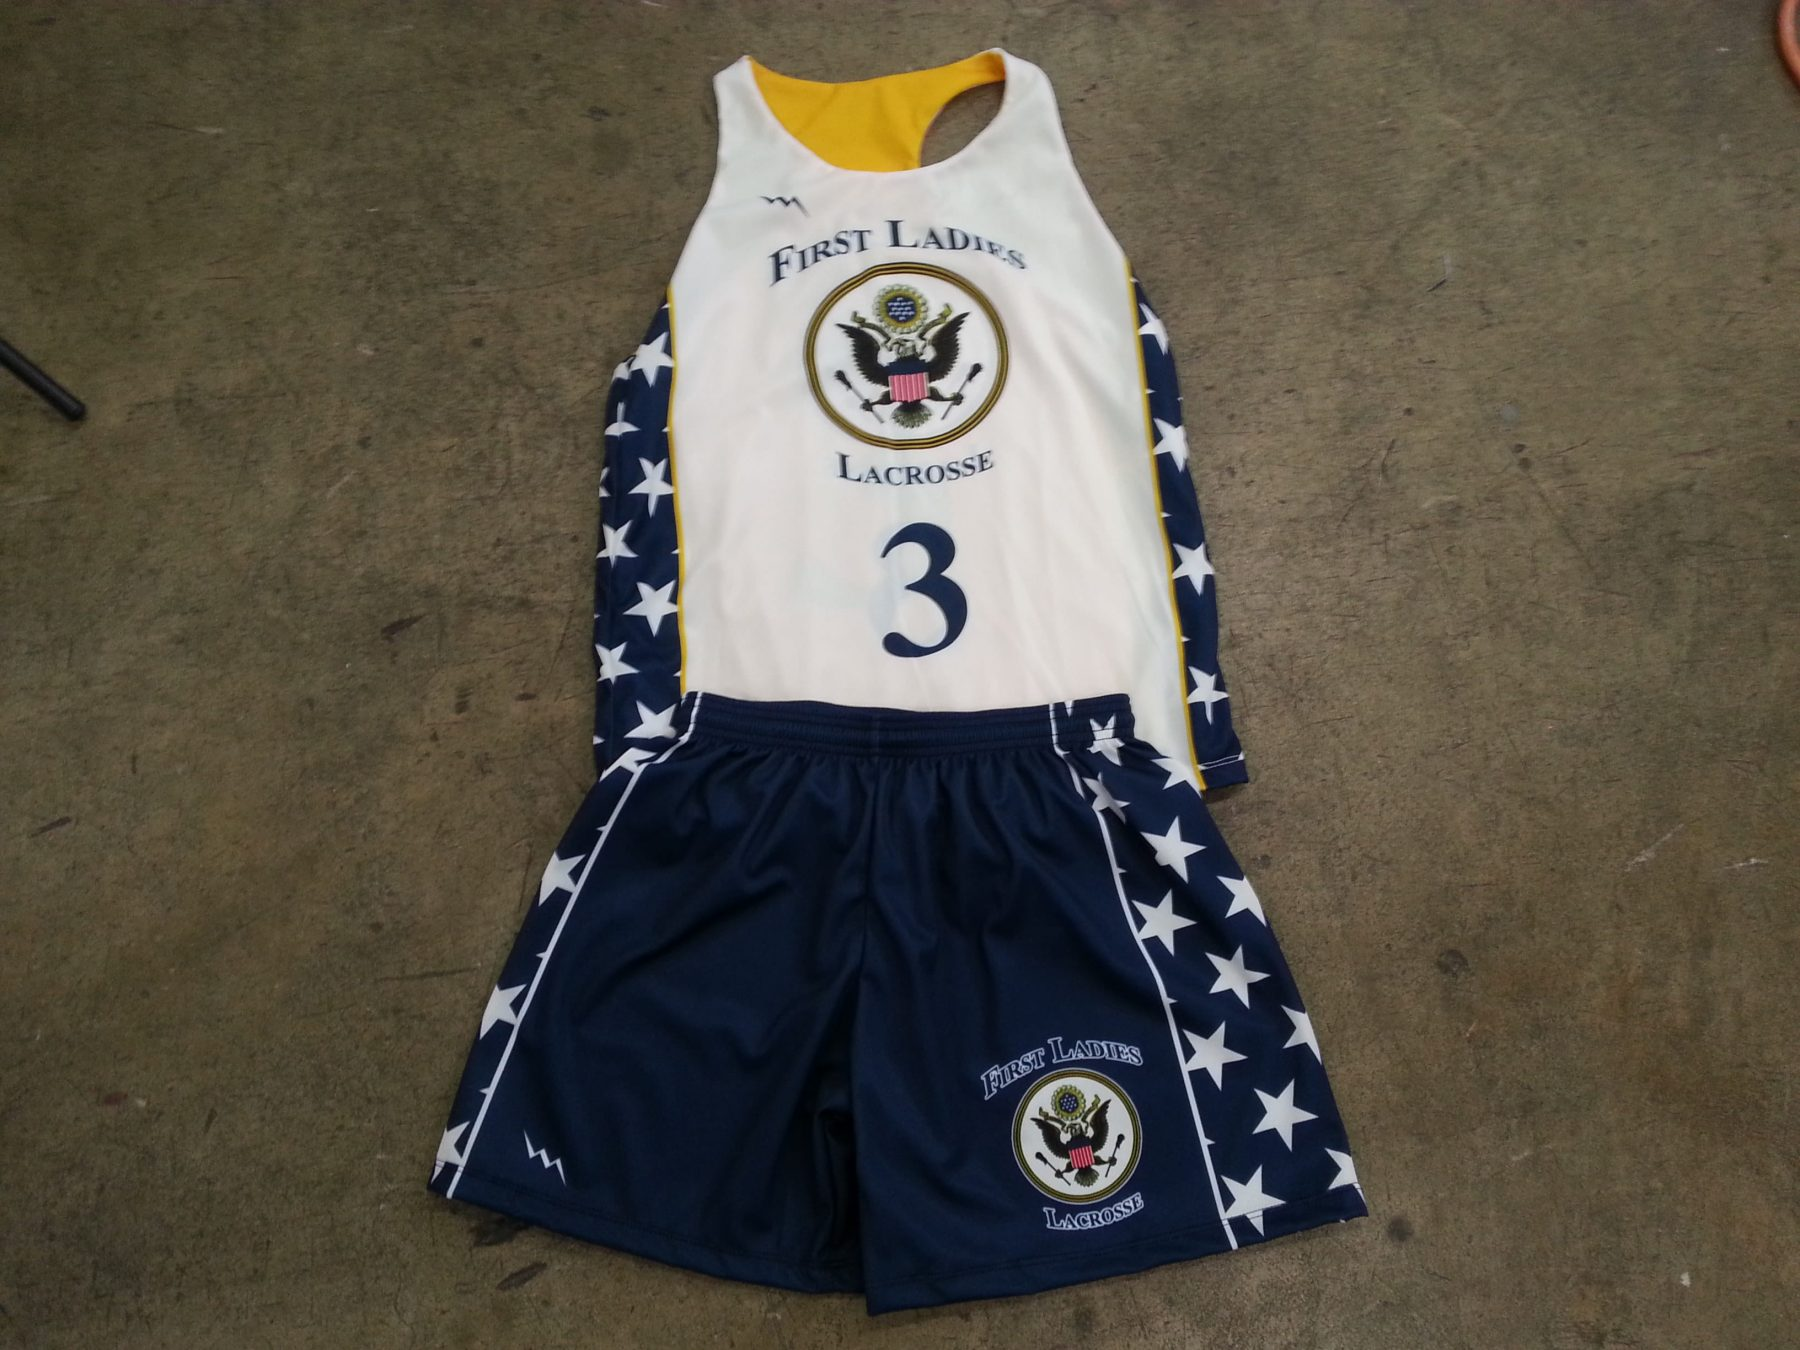 ladies lacrosse uniforms